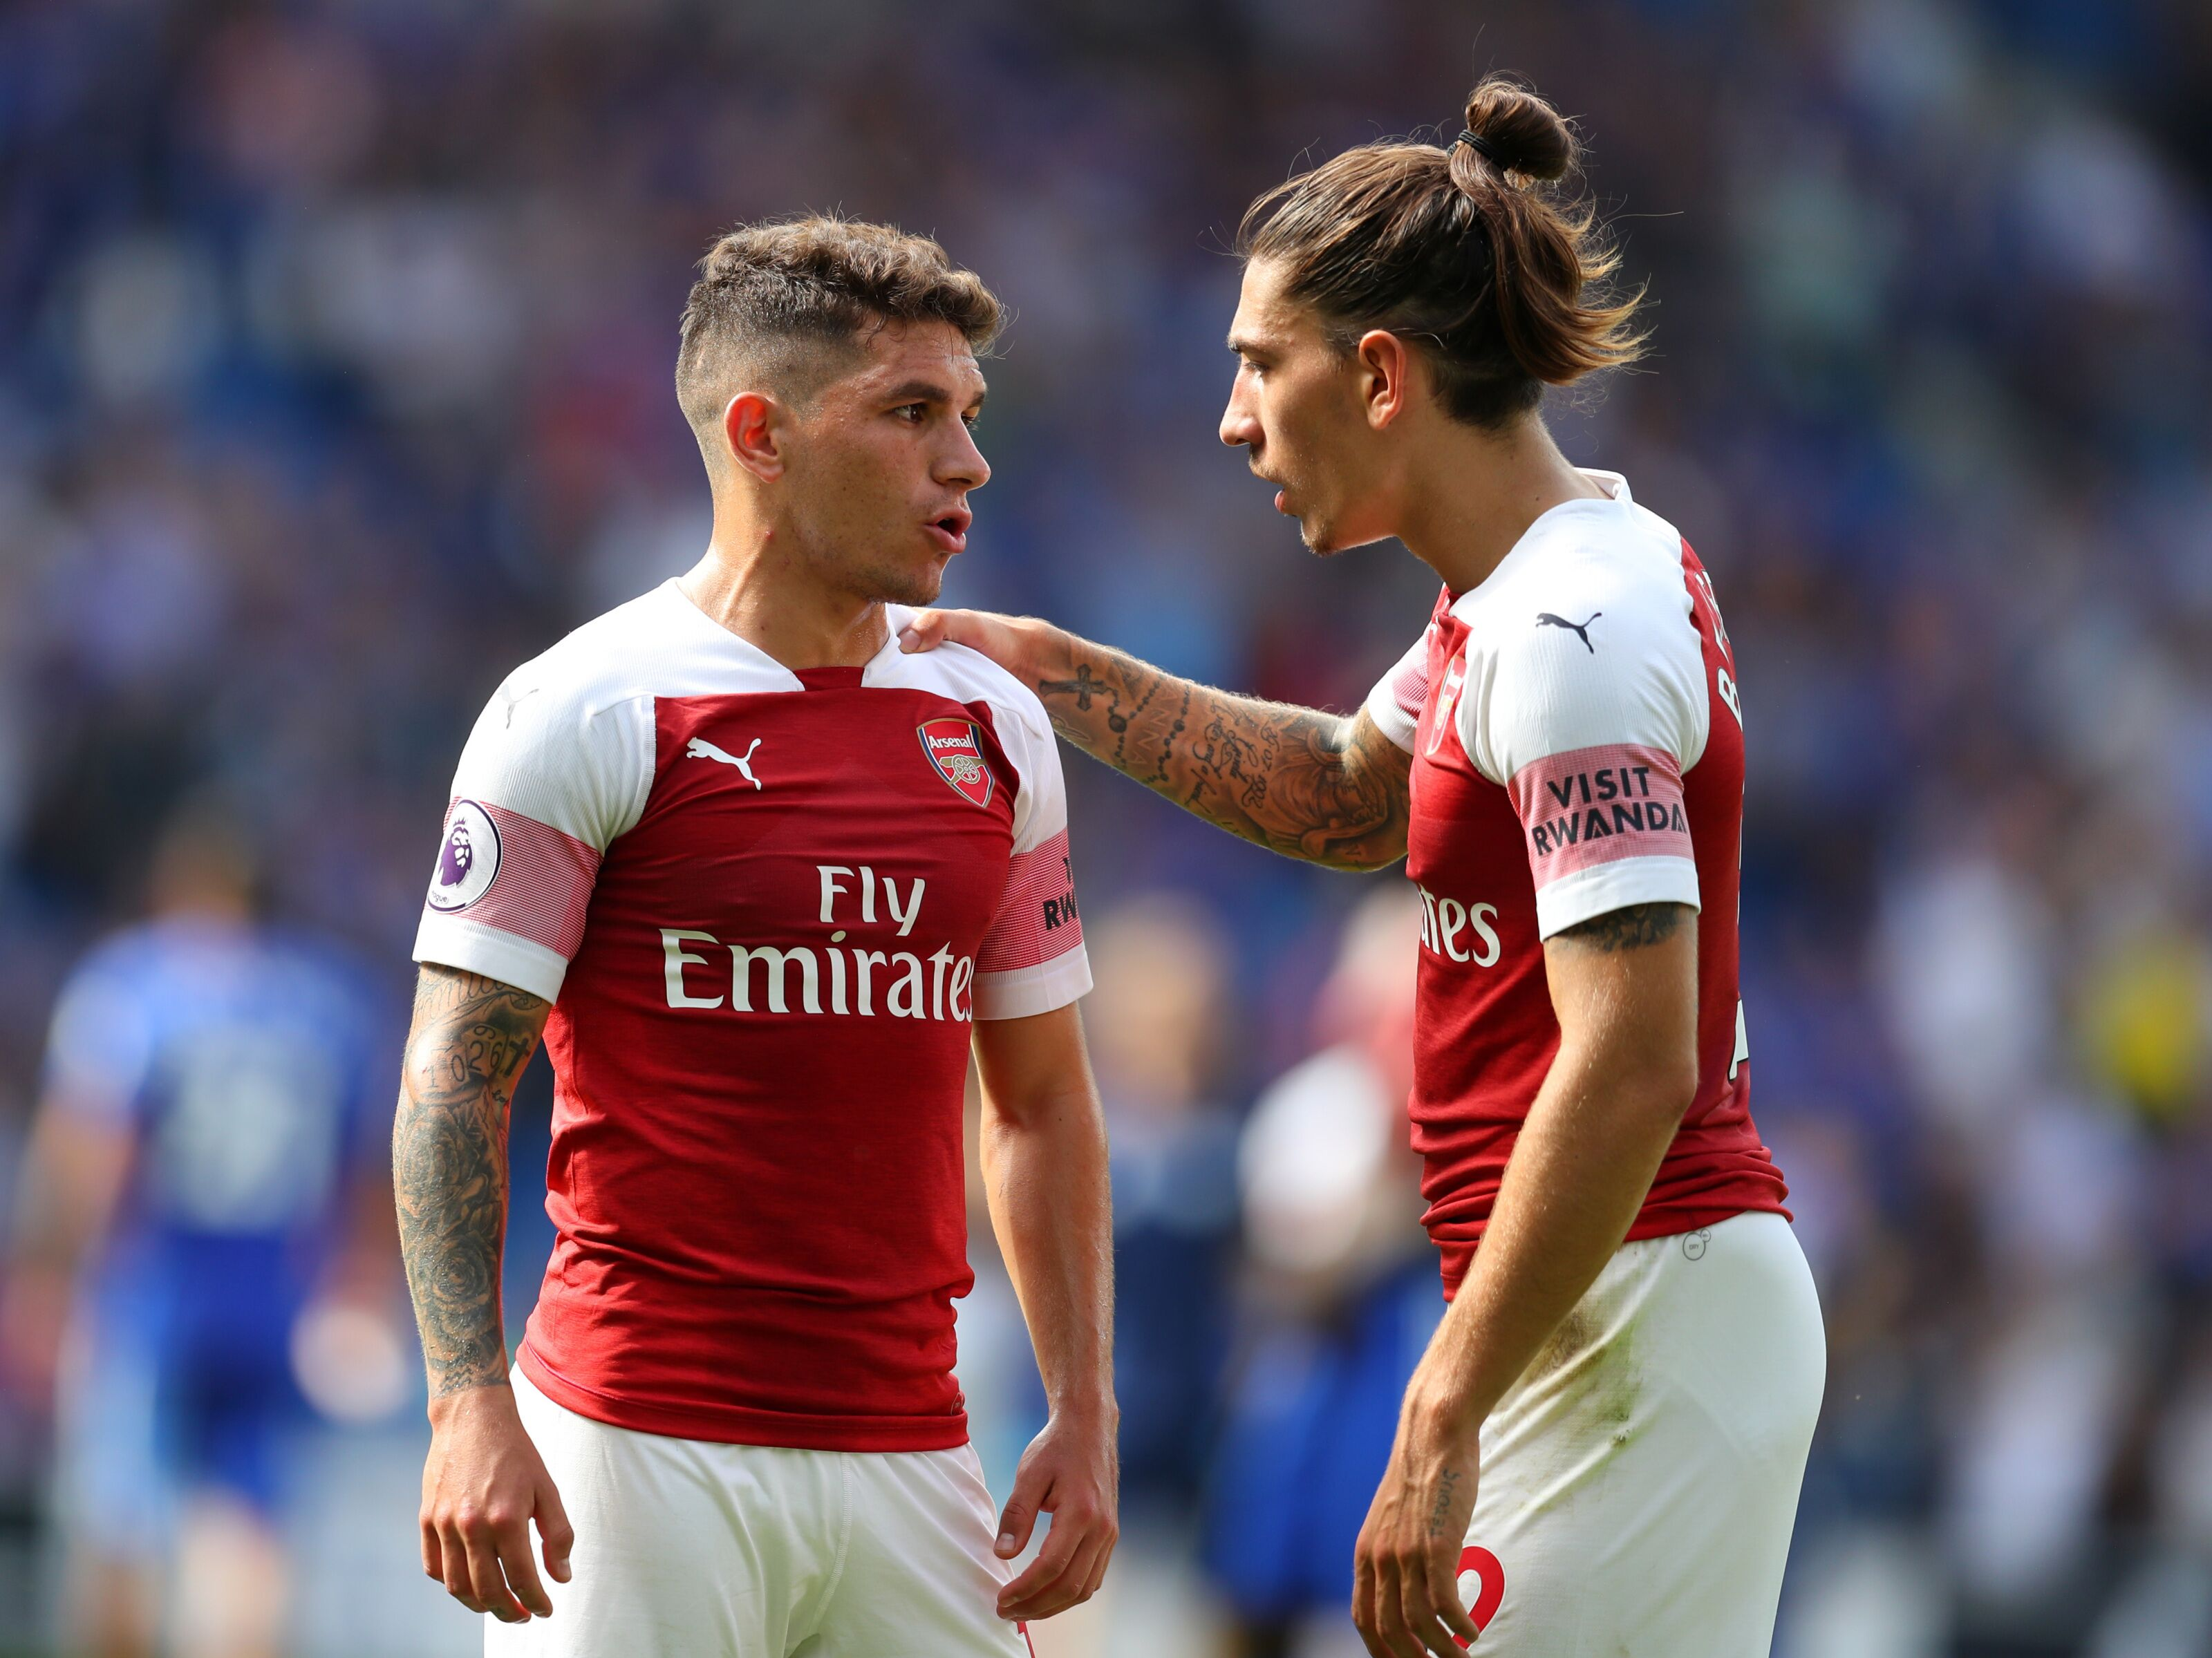 Arsenal: Lucas Torreira is why Wenger clung to Santi Cazorla